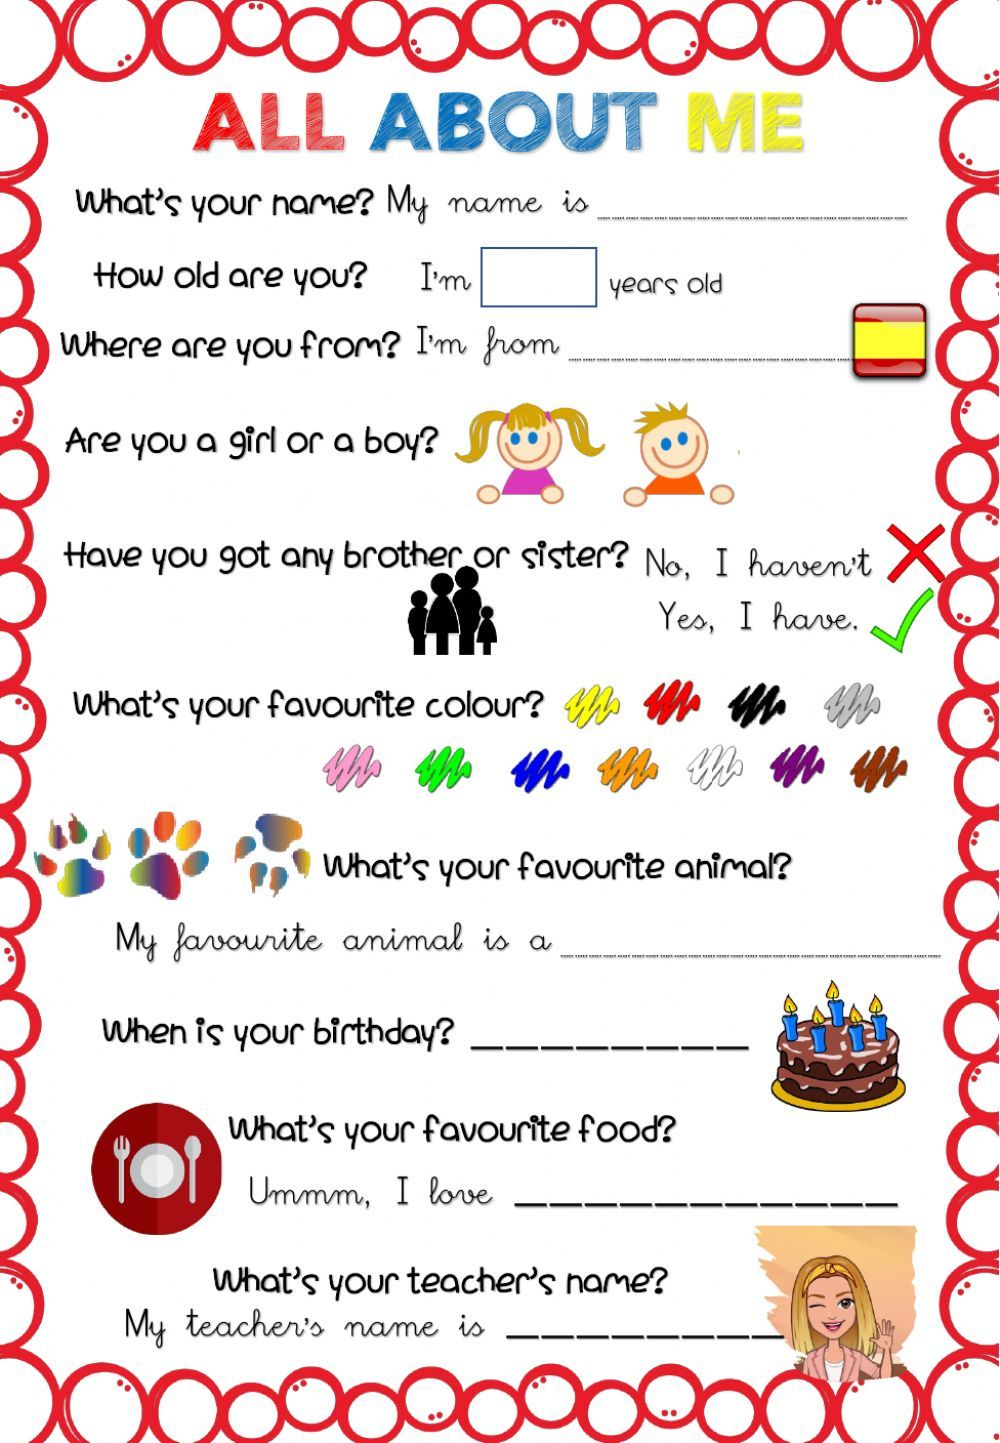 All about me activity for Primer y Segundo Ciclo de Primaria